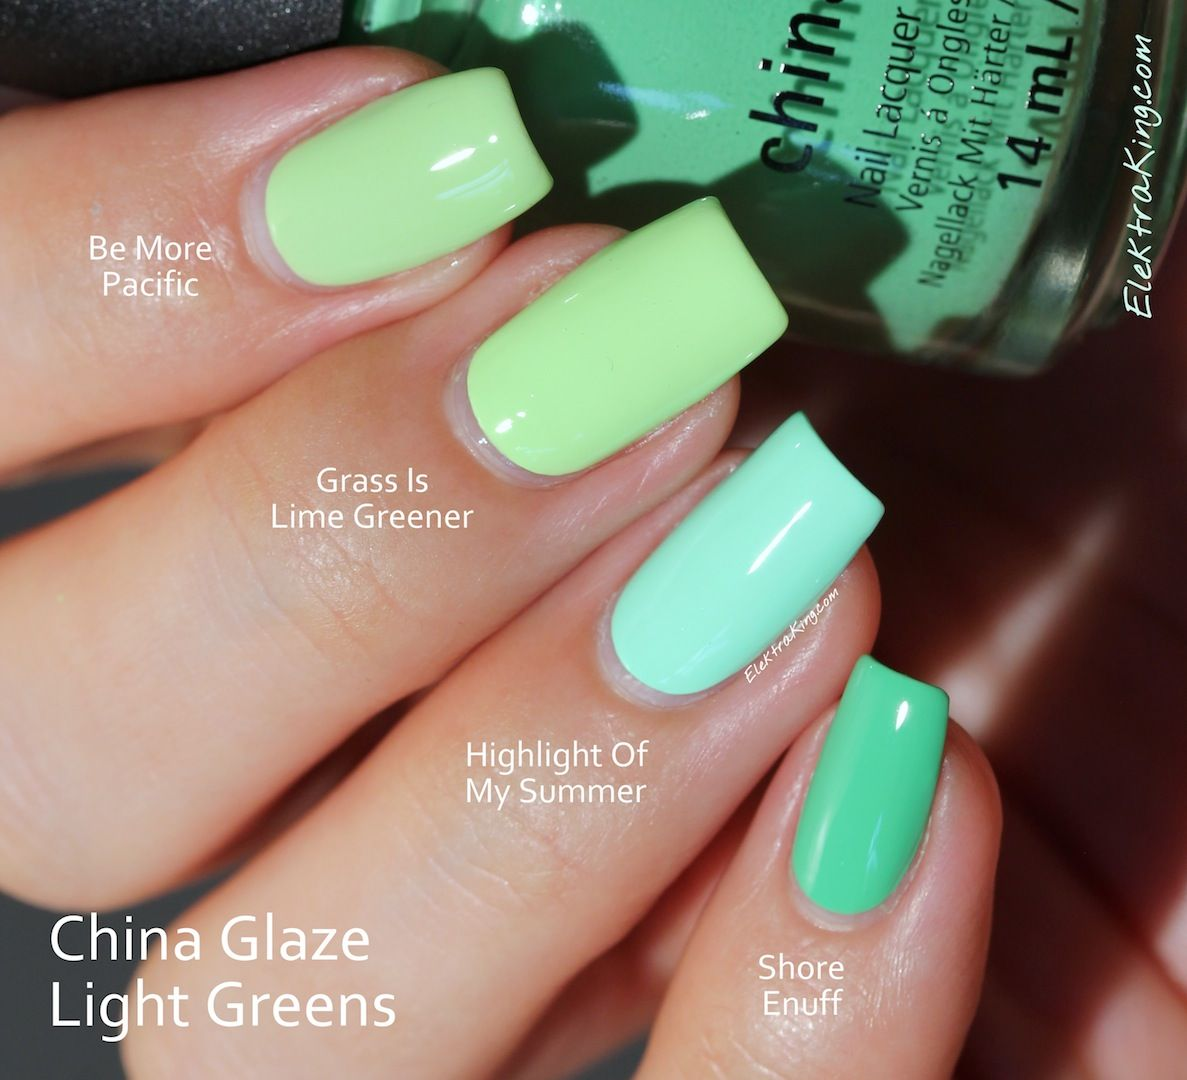 China glaze light greens color dupes pinterest china glaze china glaze light greens viennalightinggreen nailspeoplechina nvjuhfo Gallery